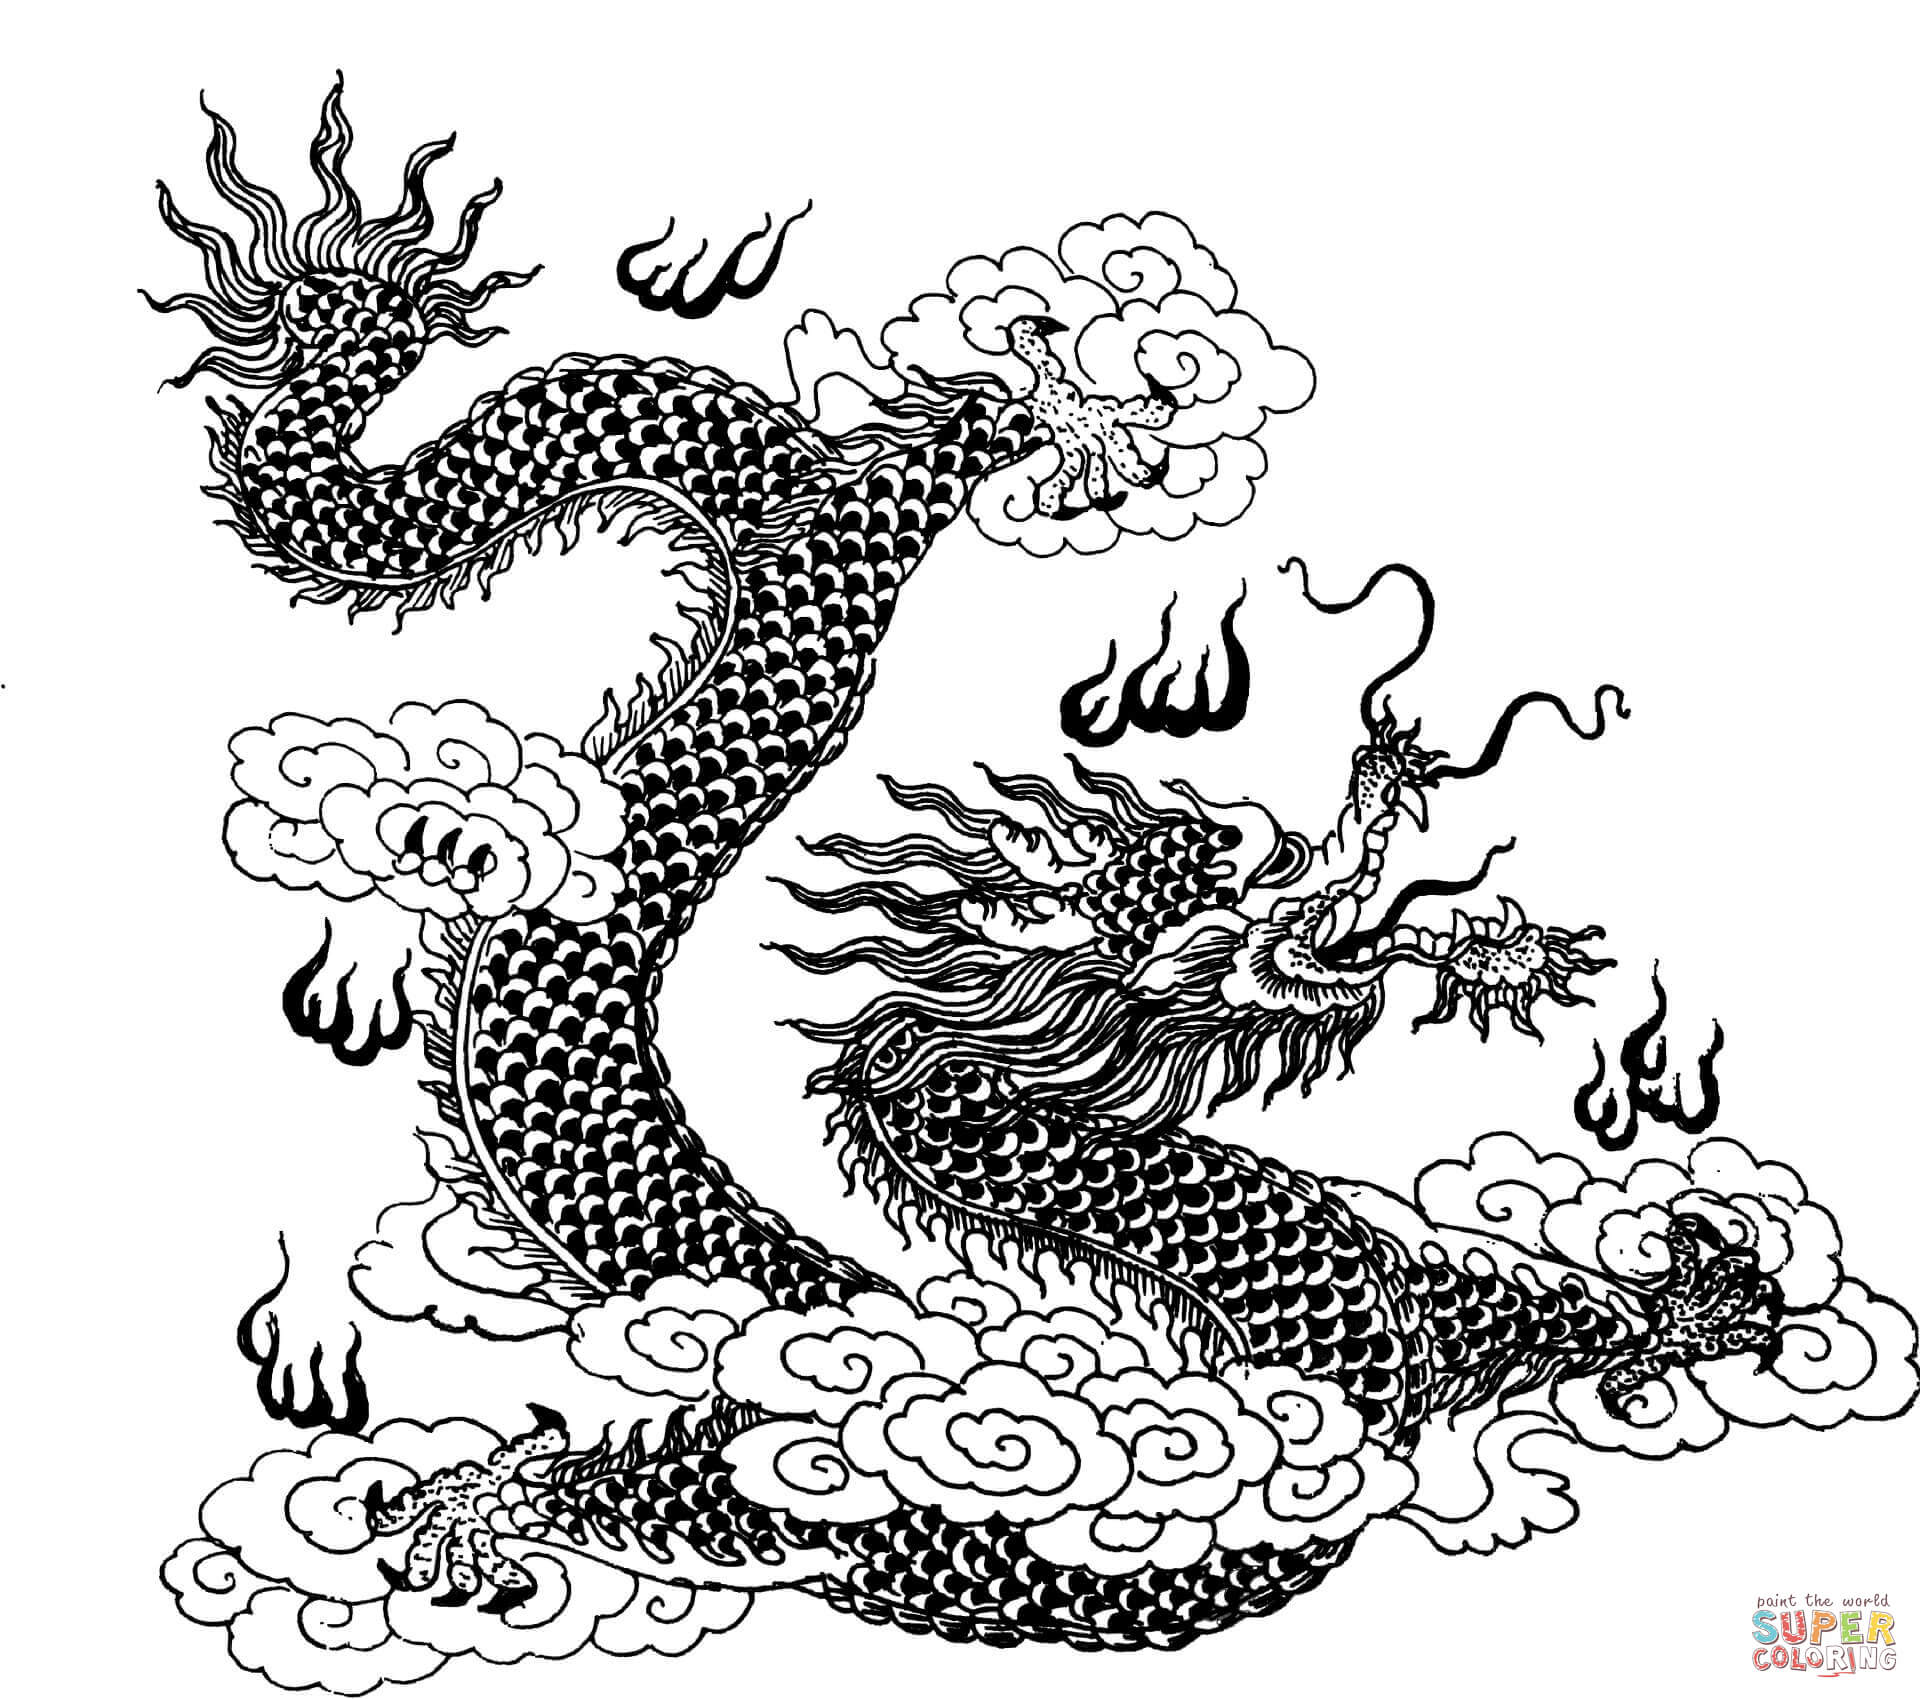 1920x1699 Dragon In Clouds Coloring Page Free Printable Coloring Pages